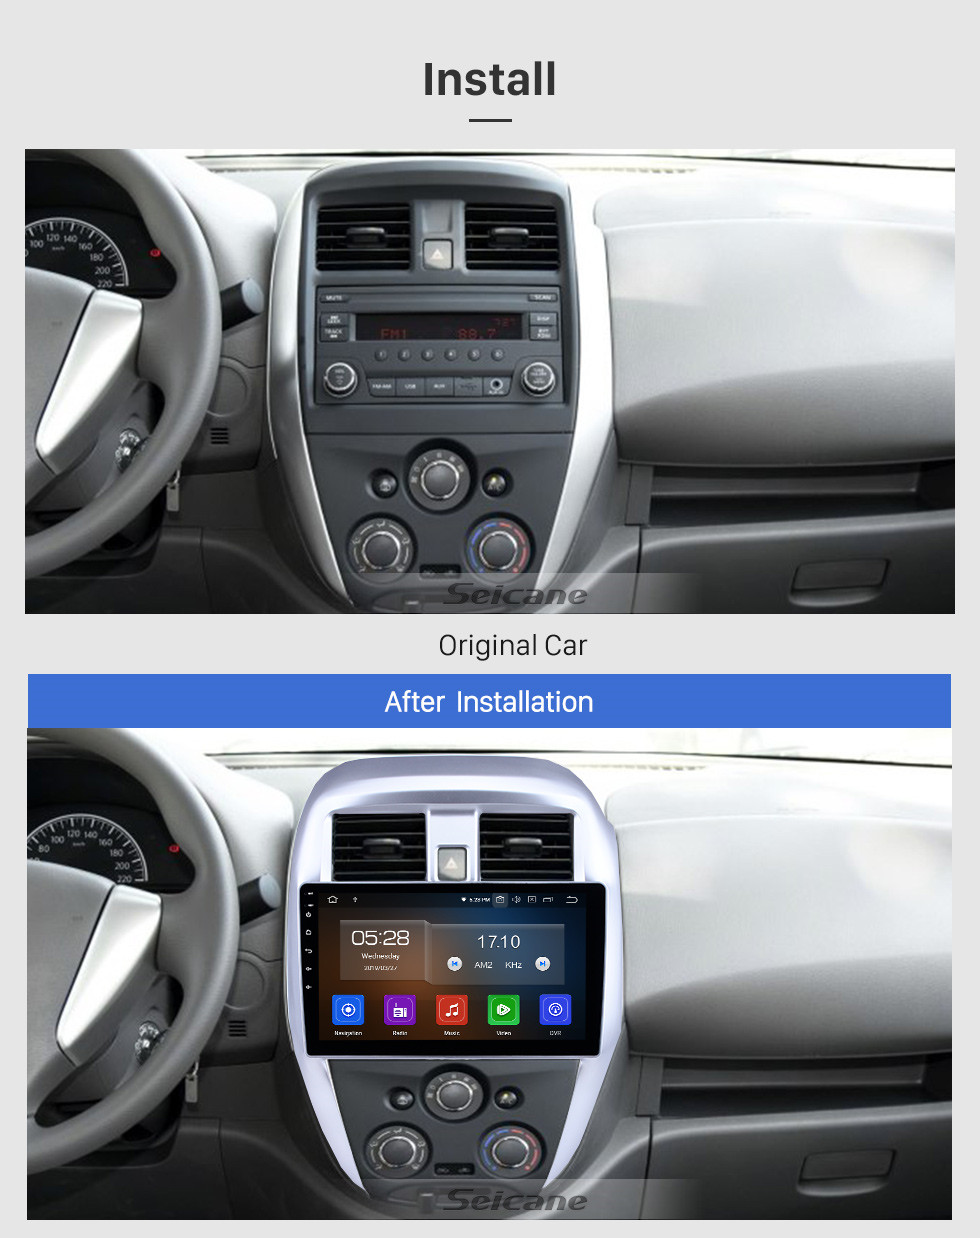 Seicane 2015 2016 Nissan Old SUNNY 10.1 inch Android 10.0 Radio GPS Navi Head unit  USB FM RDS Steering Wheel Control Bluetooth support 4G WIFI DVD 1080P